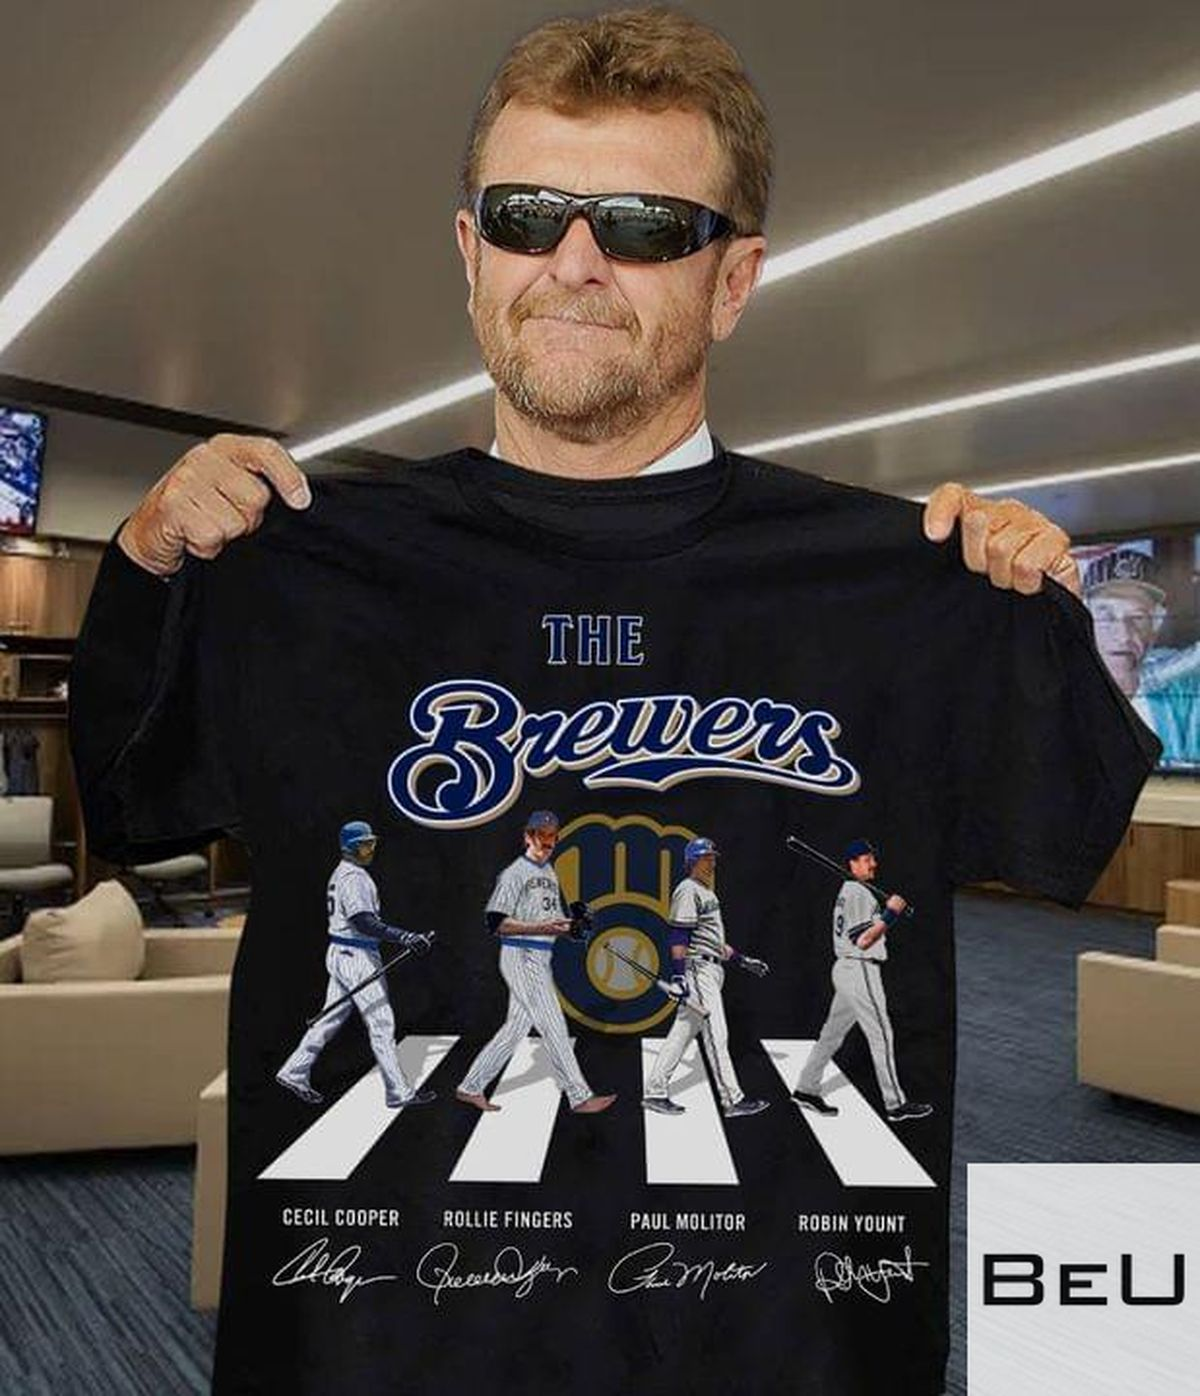 The Brewers Cecilcooper Rollie Fingers Paul Molitor Robin Yount Shirt v